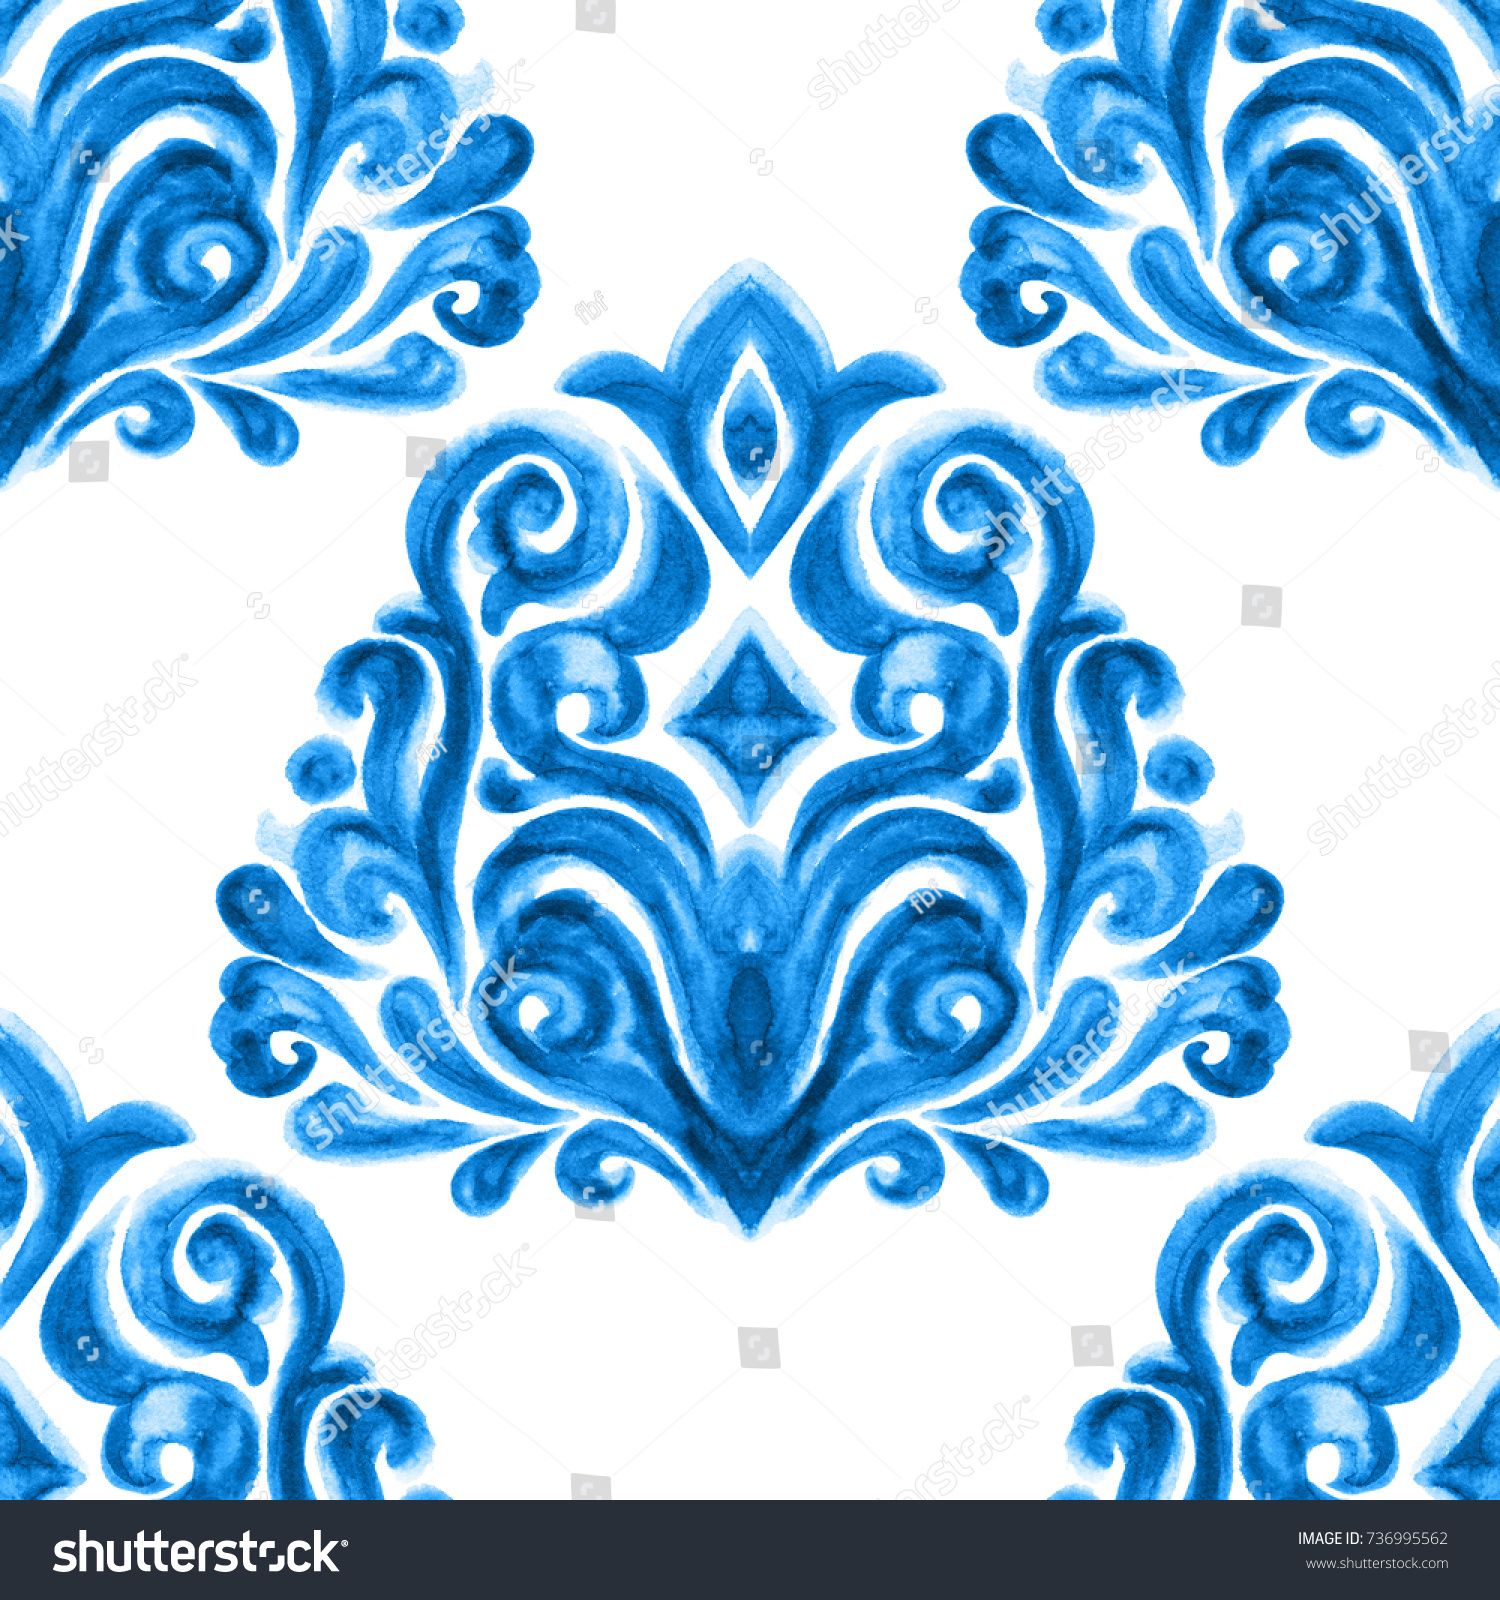 Abstract damask flower seamless ornamental watercolor paint pattern. Elegant luxury texture for wallpapers, backgrounds